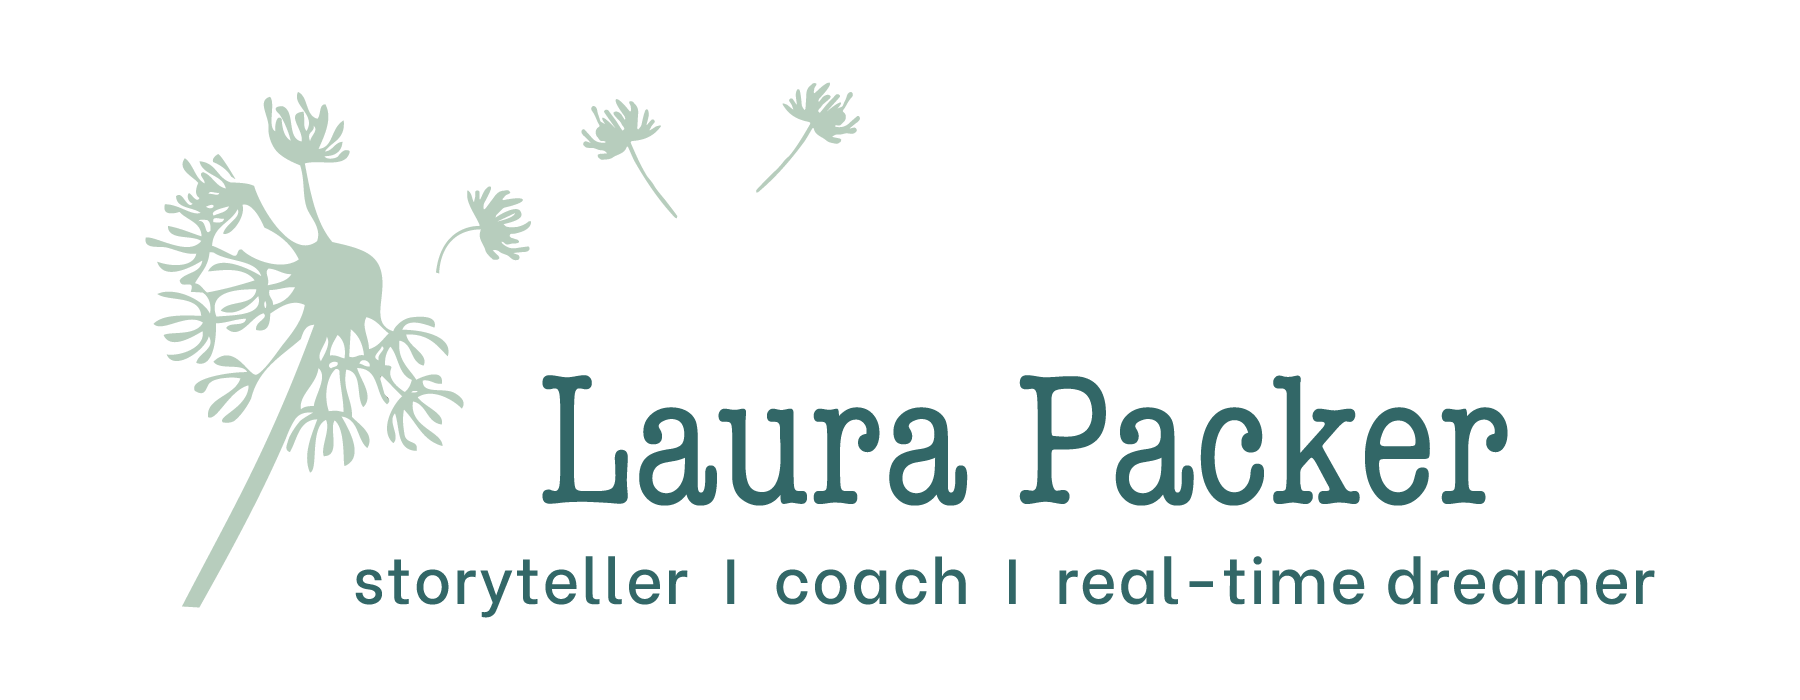 Laura Packer